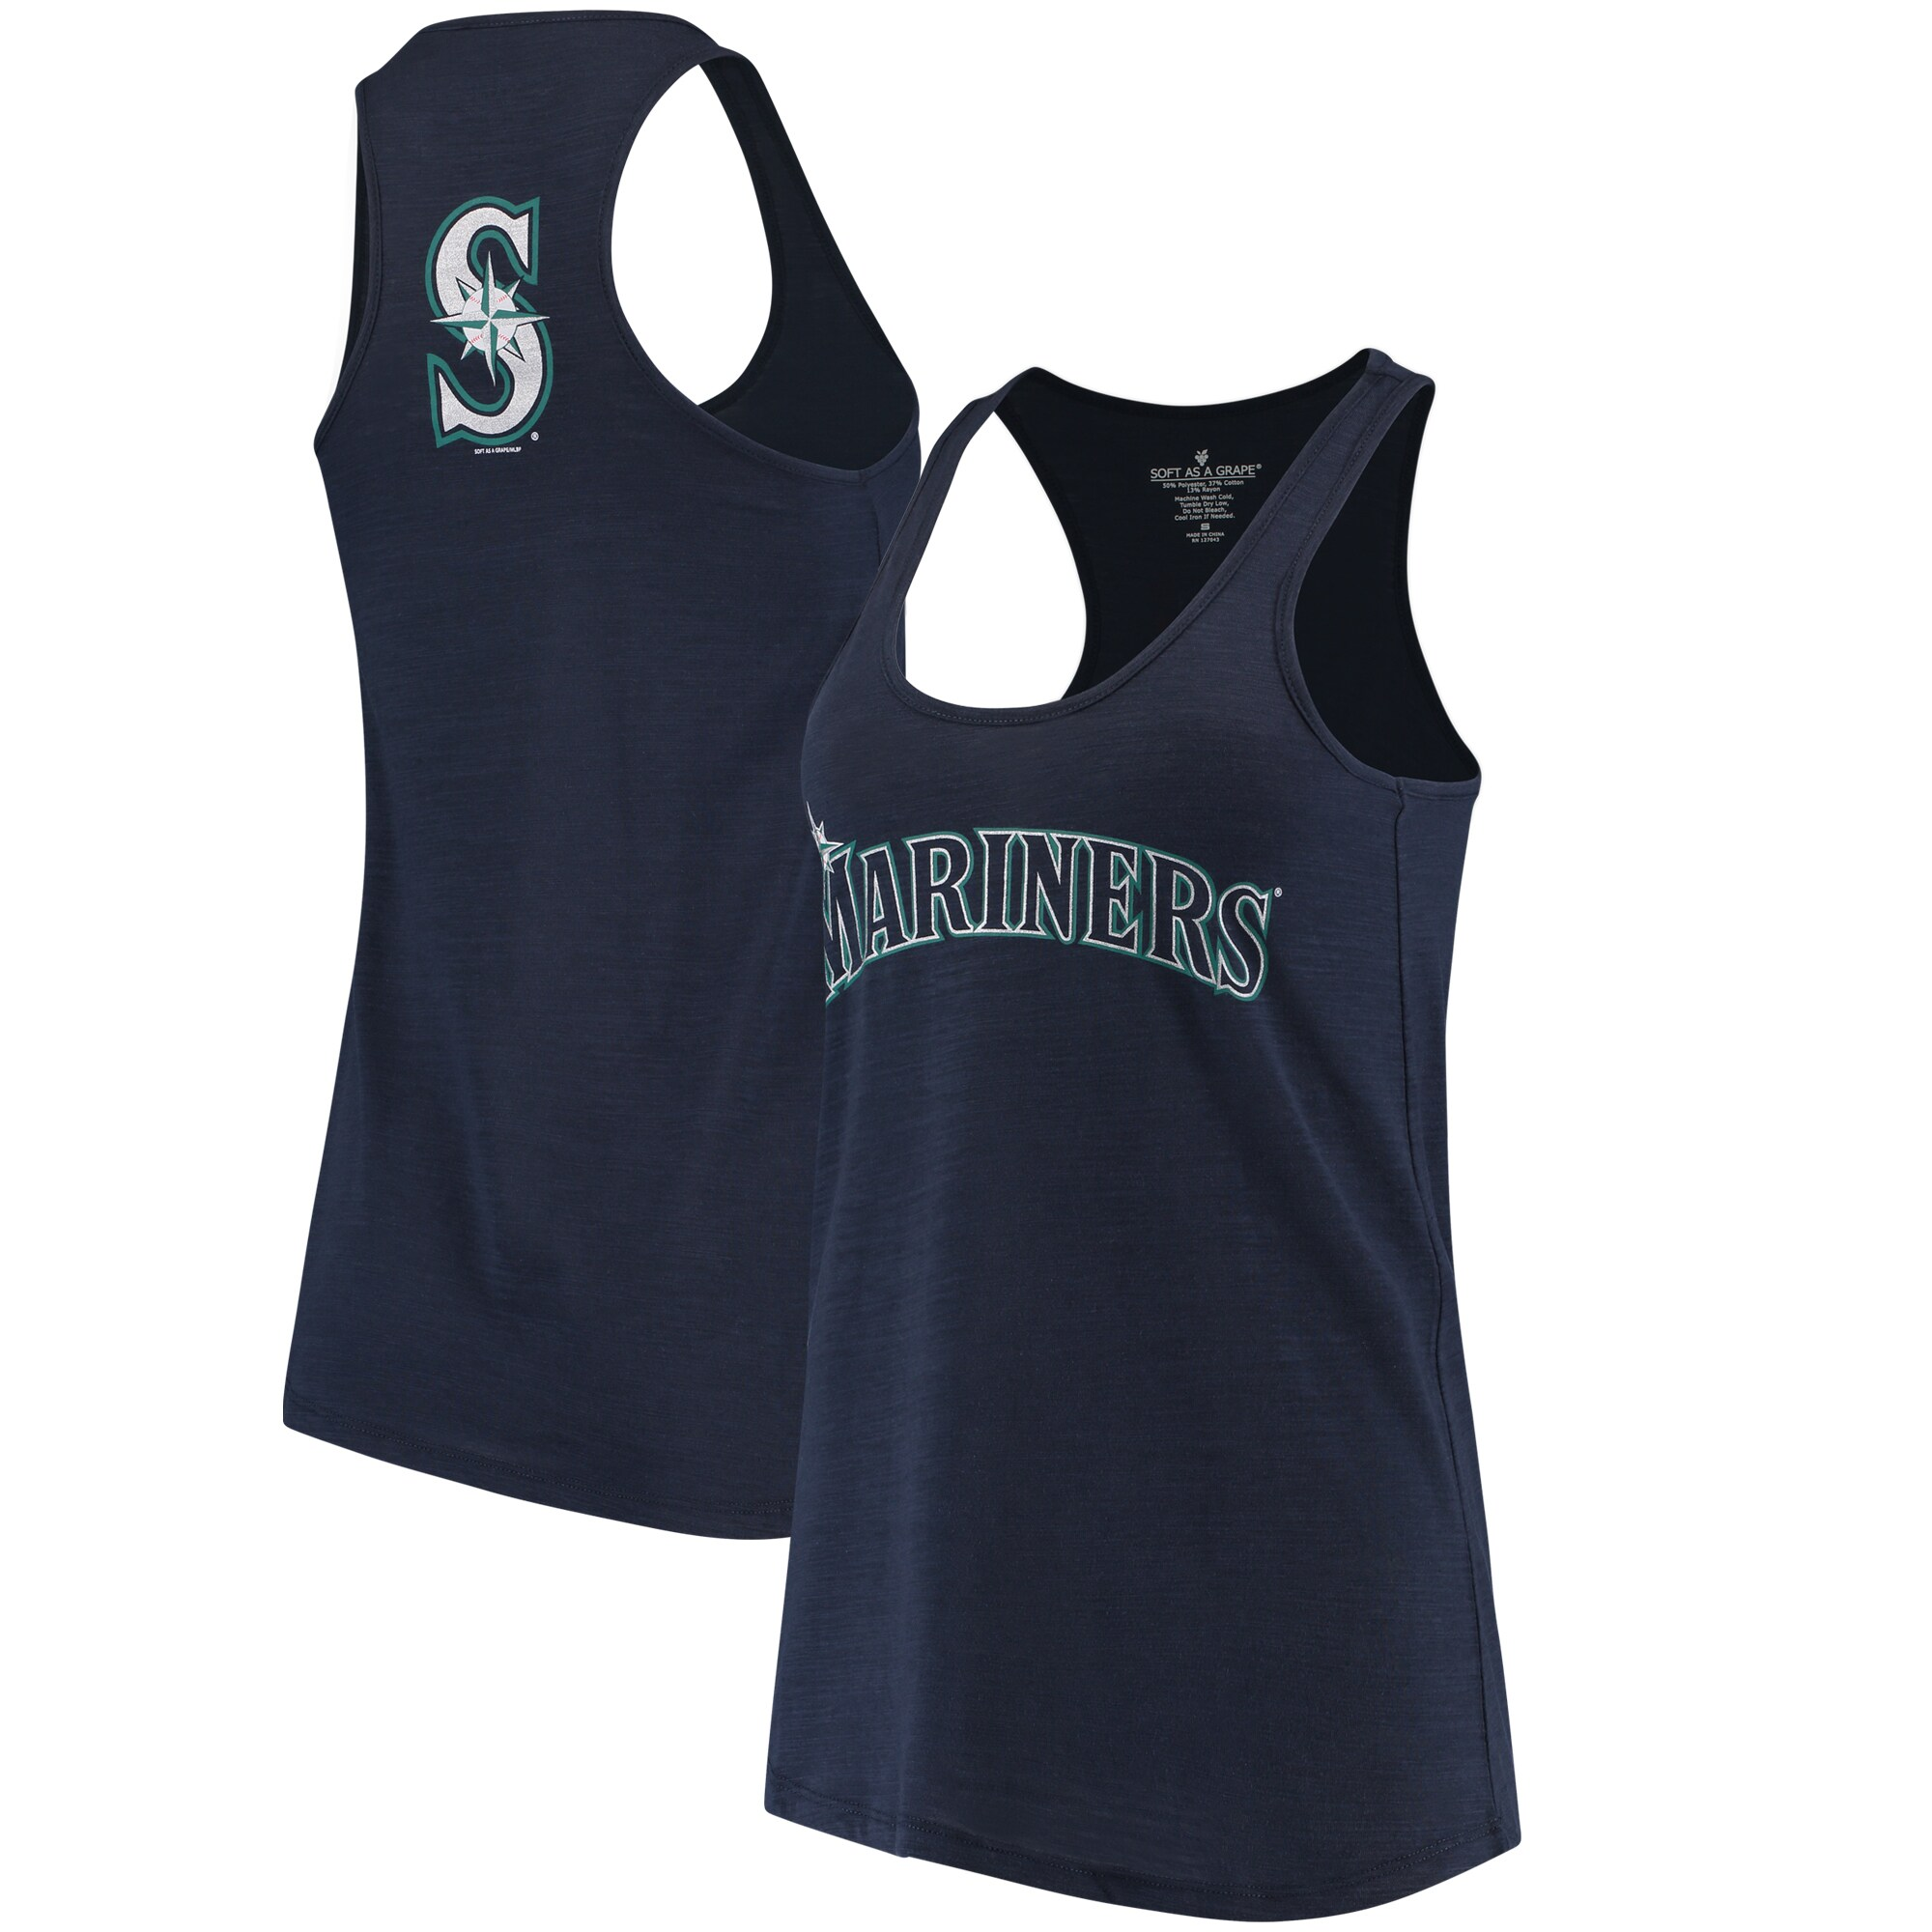 Seattle Mariners Soft As A Grape Women's Front & Back Tri-Blend Racerback Tank Top - Navy